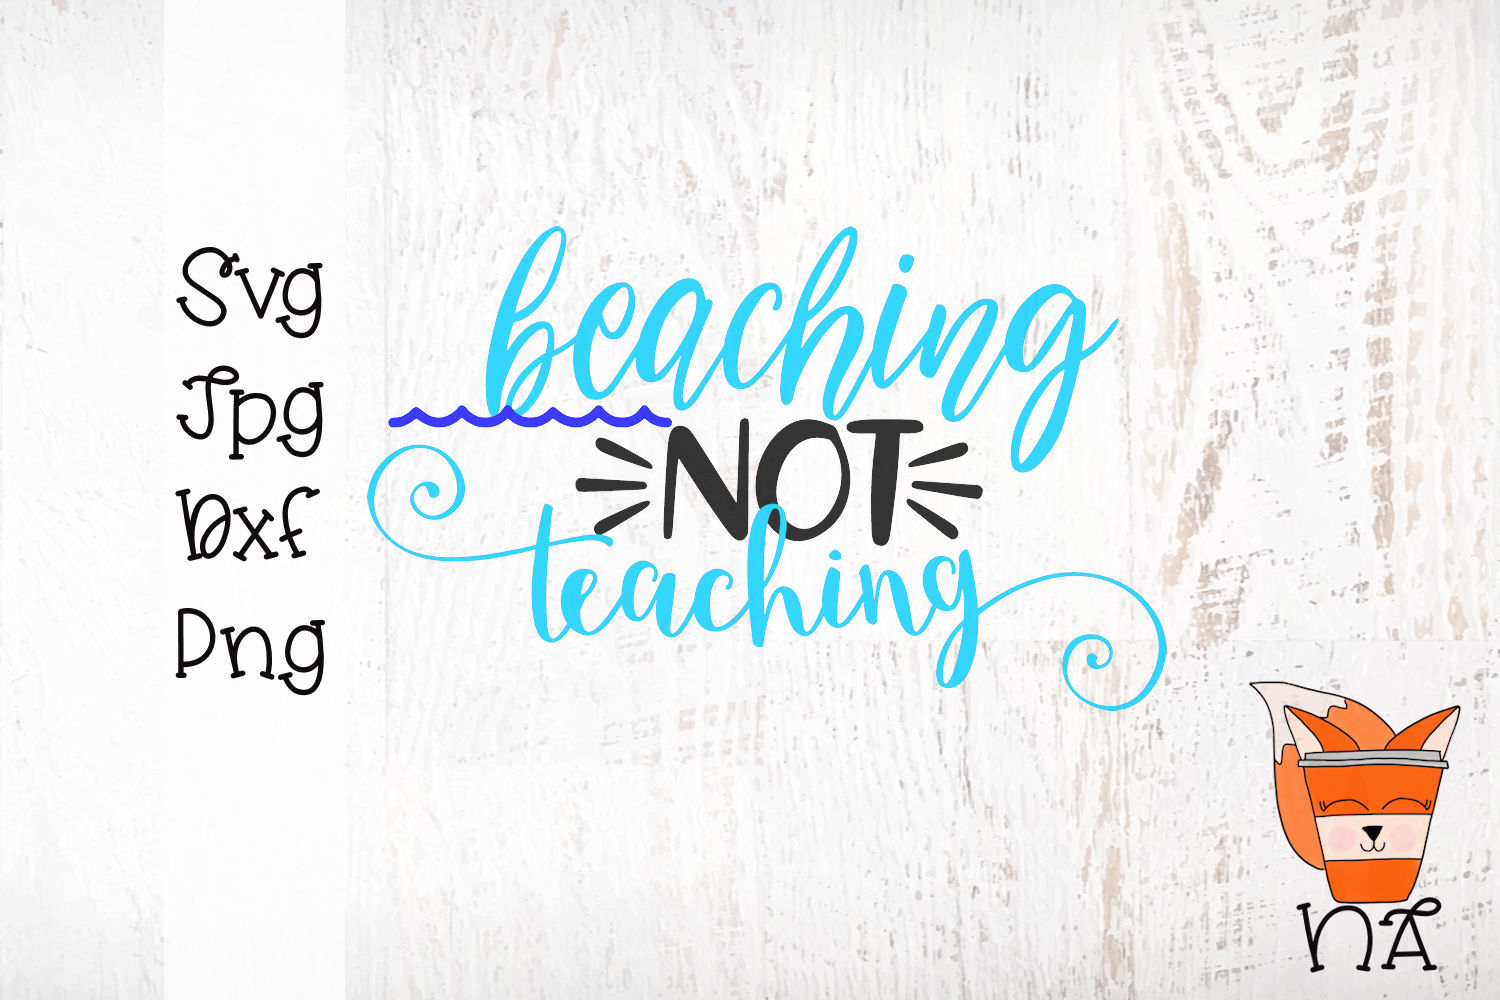 Beaching Not Teaching - A End Of School Year SVG example image 2